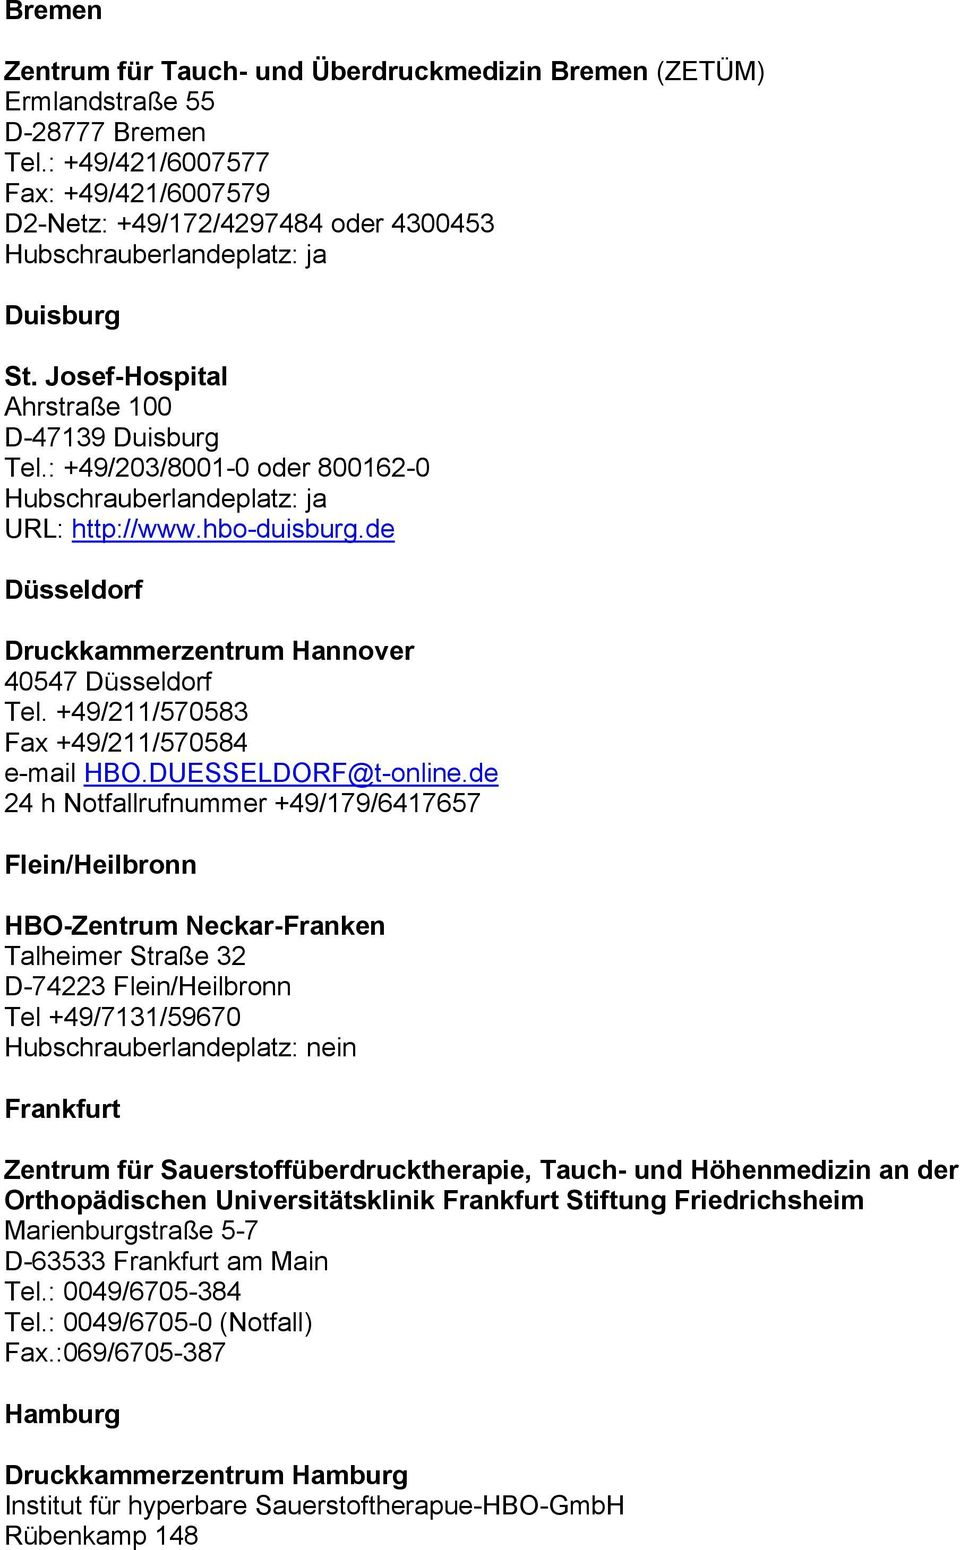 +49/211/570583 Fax +49/211/570584 e-mail HBO.DUESSELDORF@t-online.